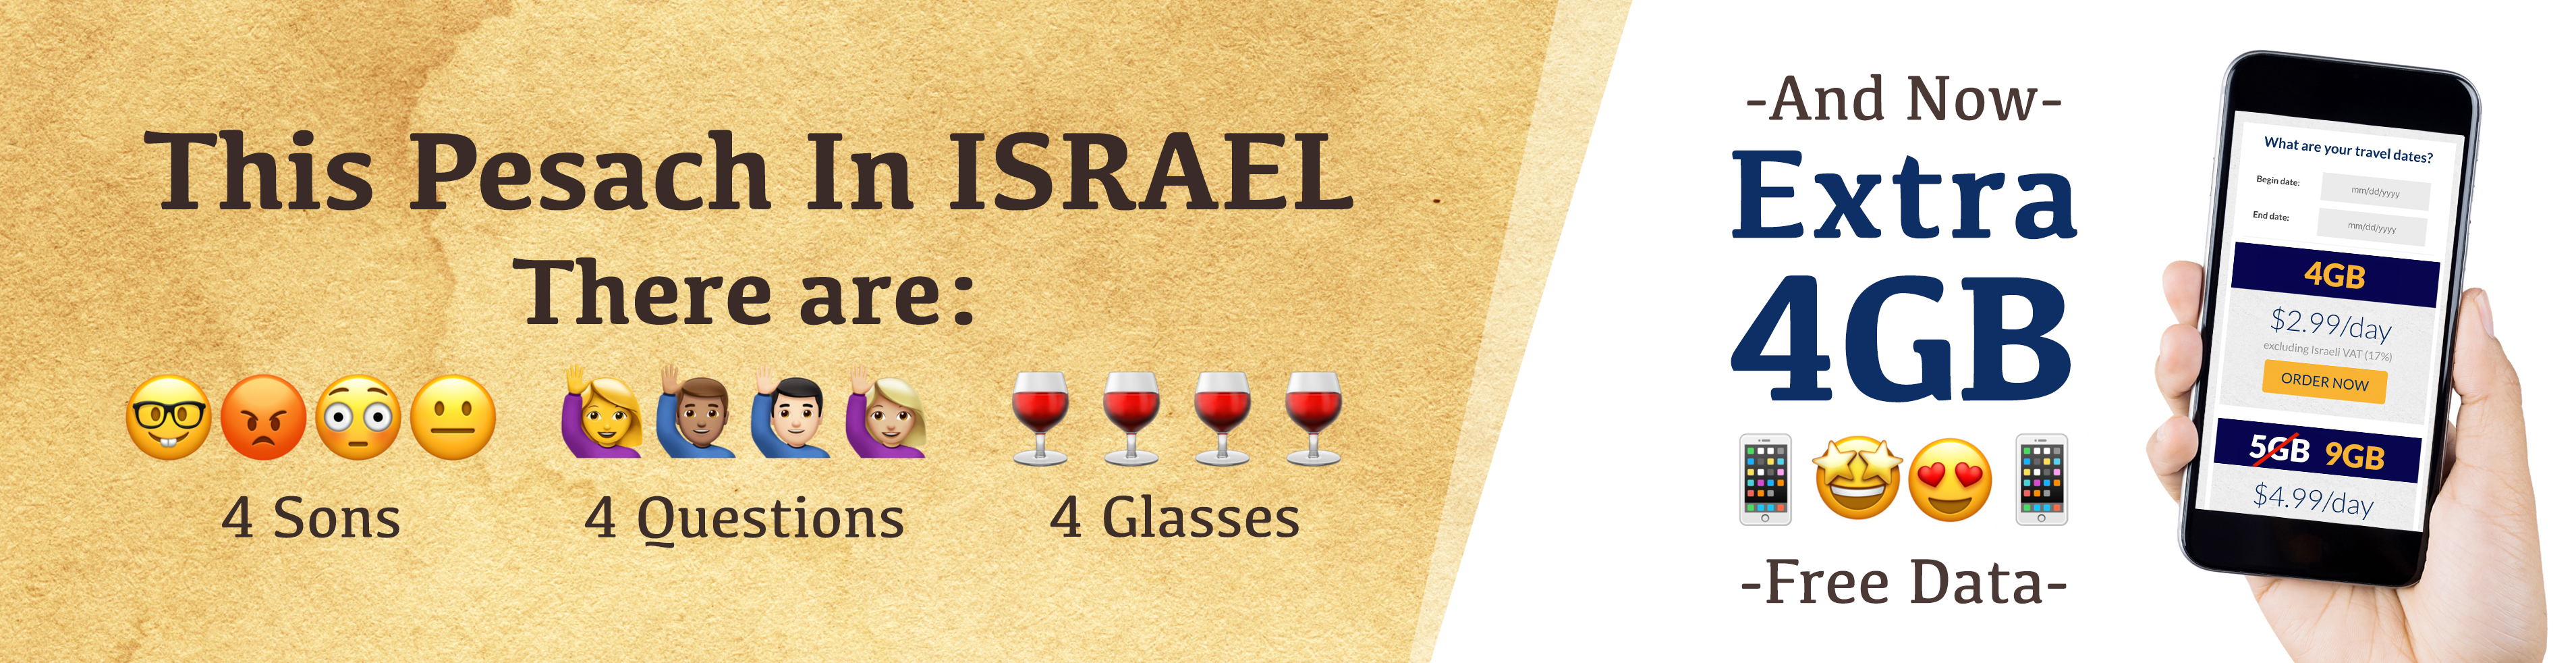 pesach special for those travelling to Israel this year